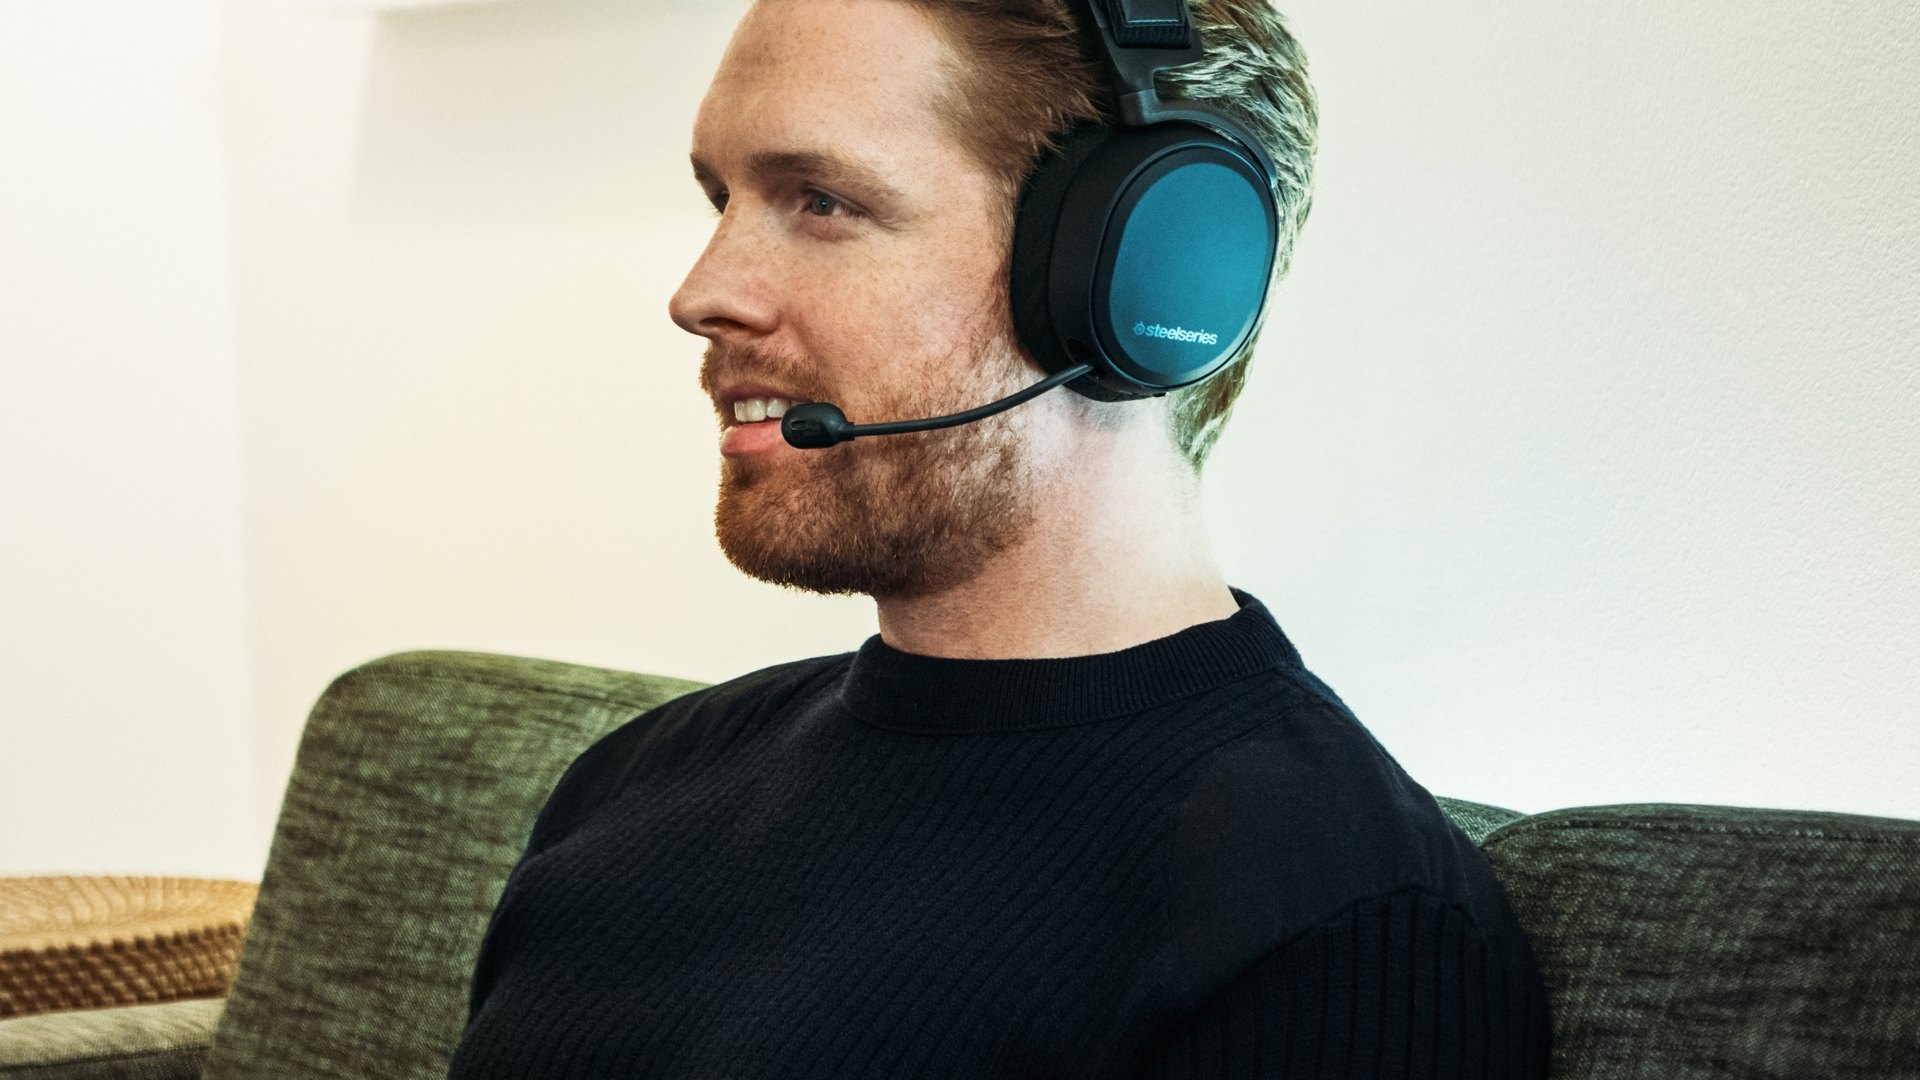 Widely recognized as the best mic in gaming, the Arctis ClearCast microphone delivers studio-quality voice clarity and background noise cancellation.